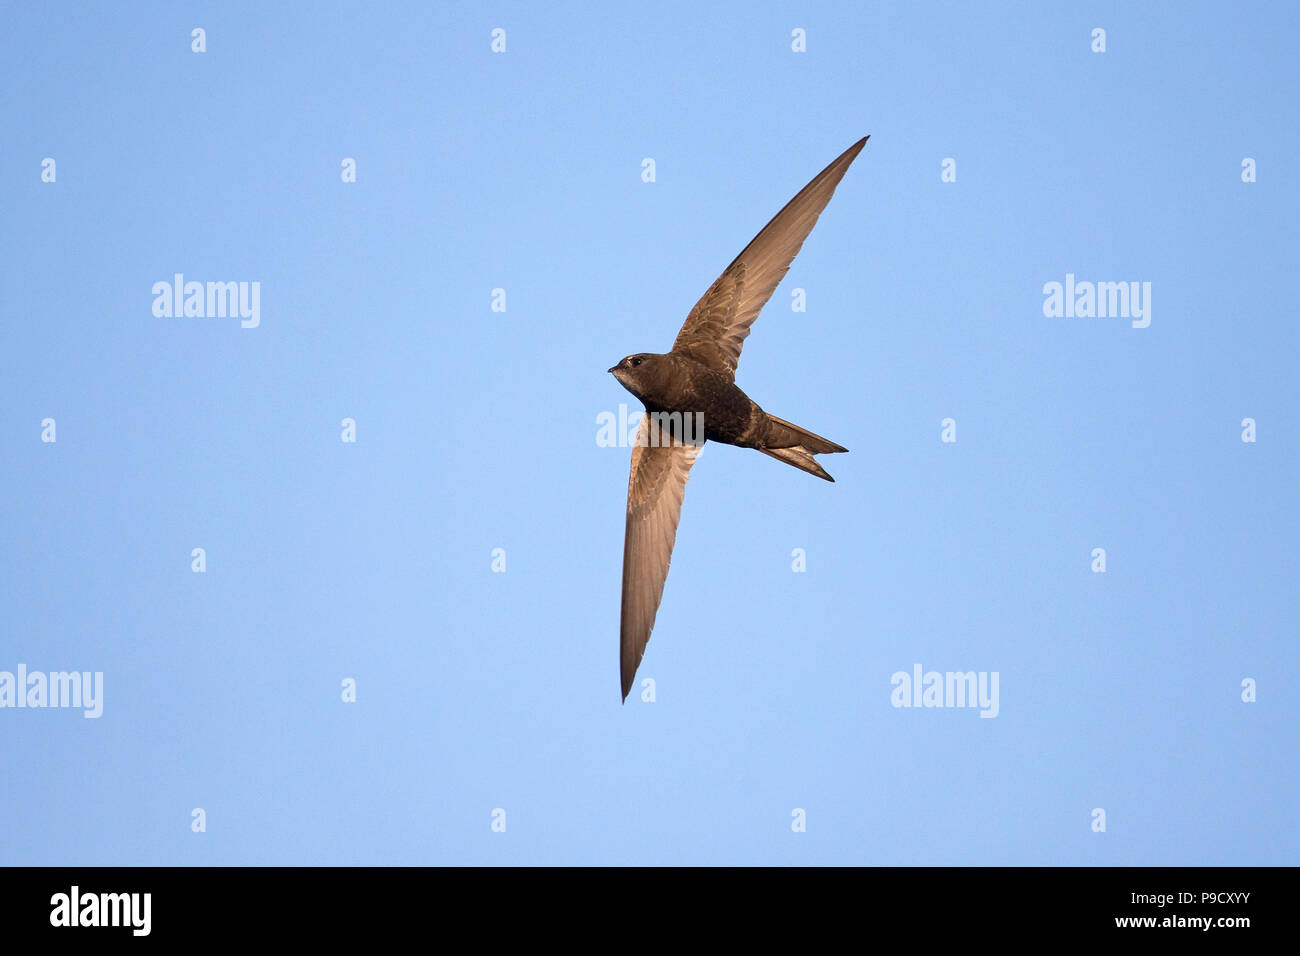 Common Swift (Apus apus) - Stock Image